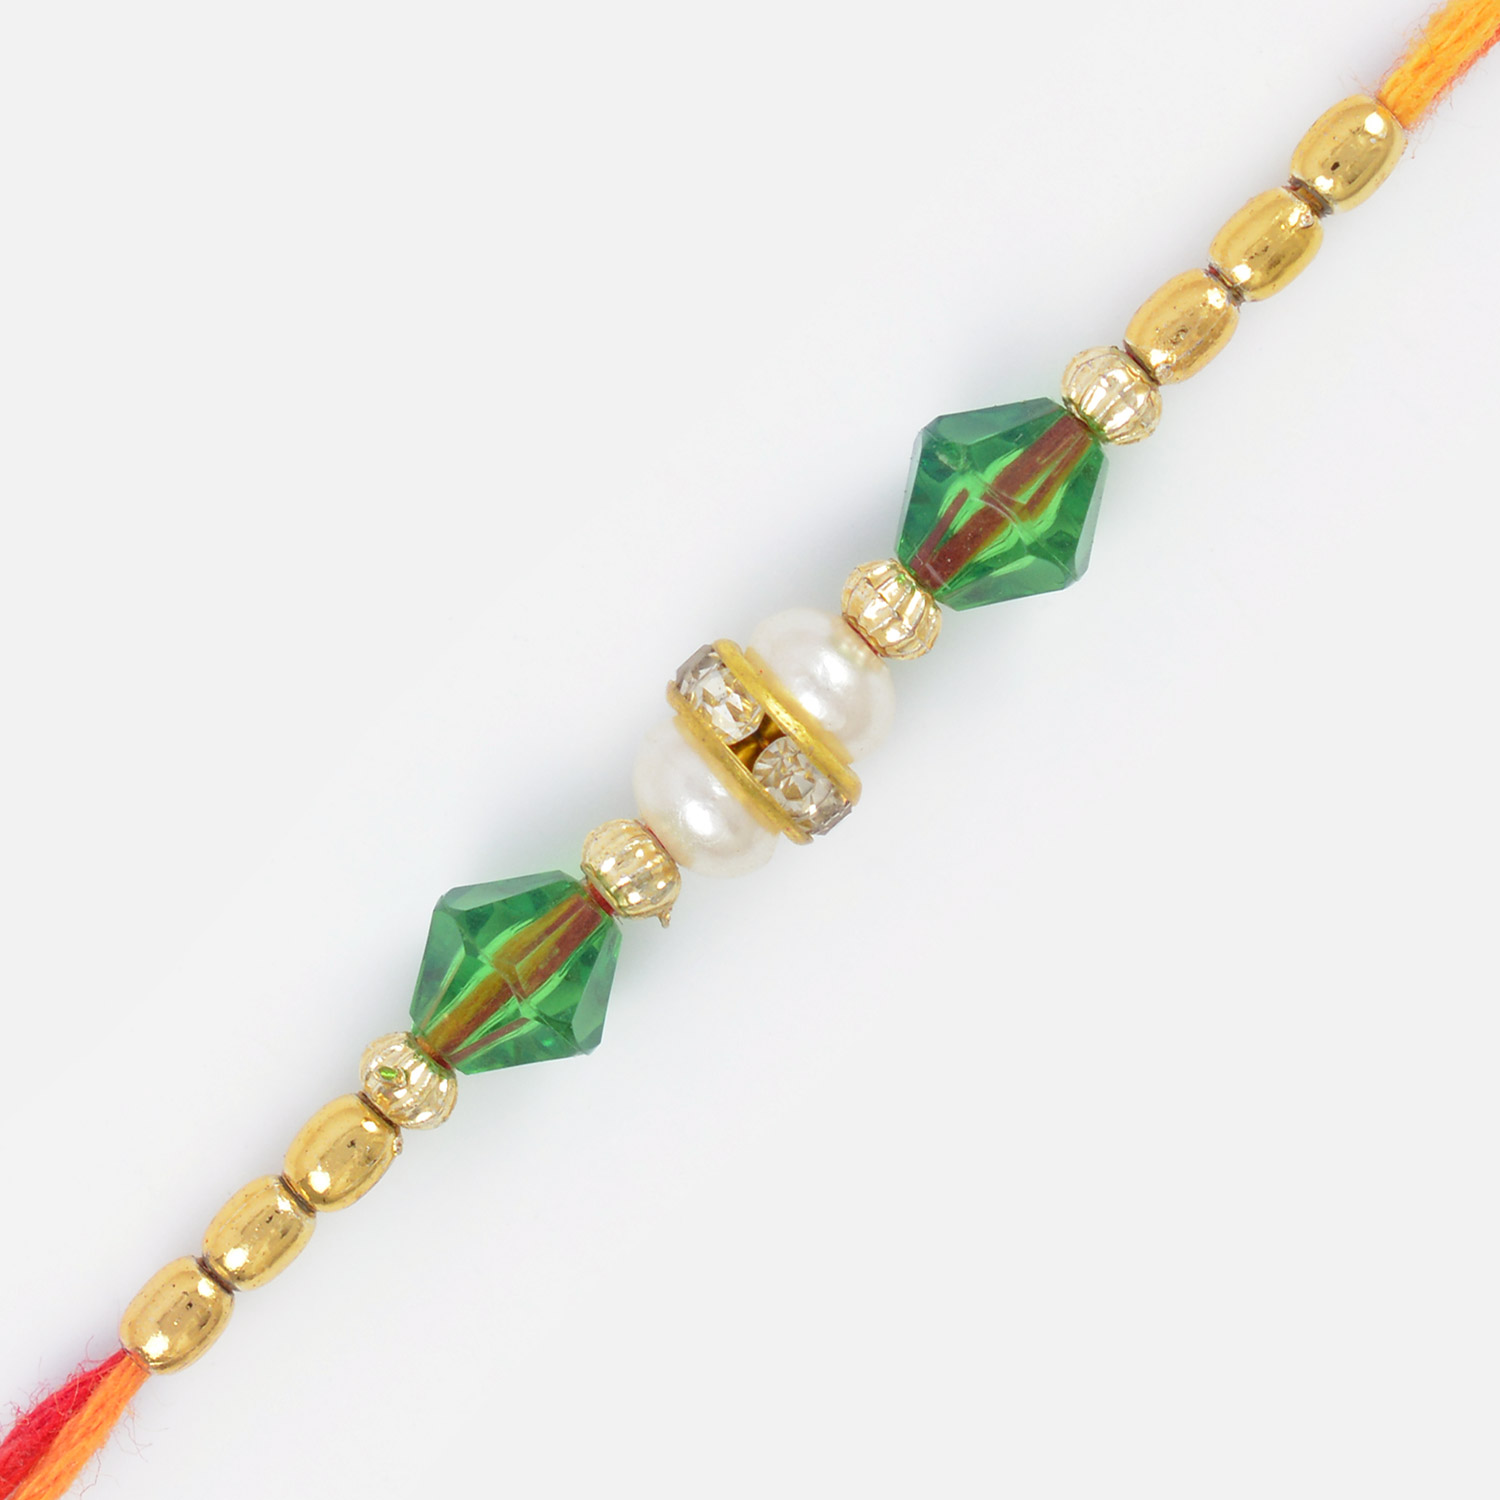 Awesome Beads and Dual Half Pearl Brother Rakhi